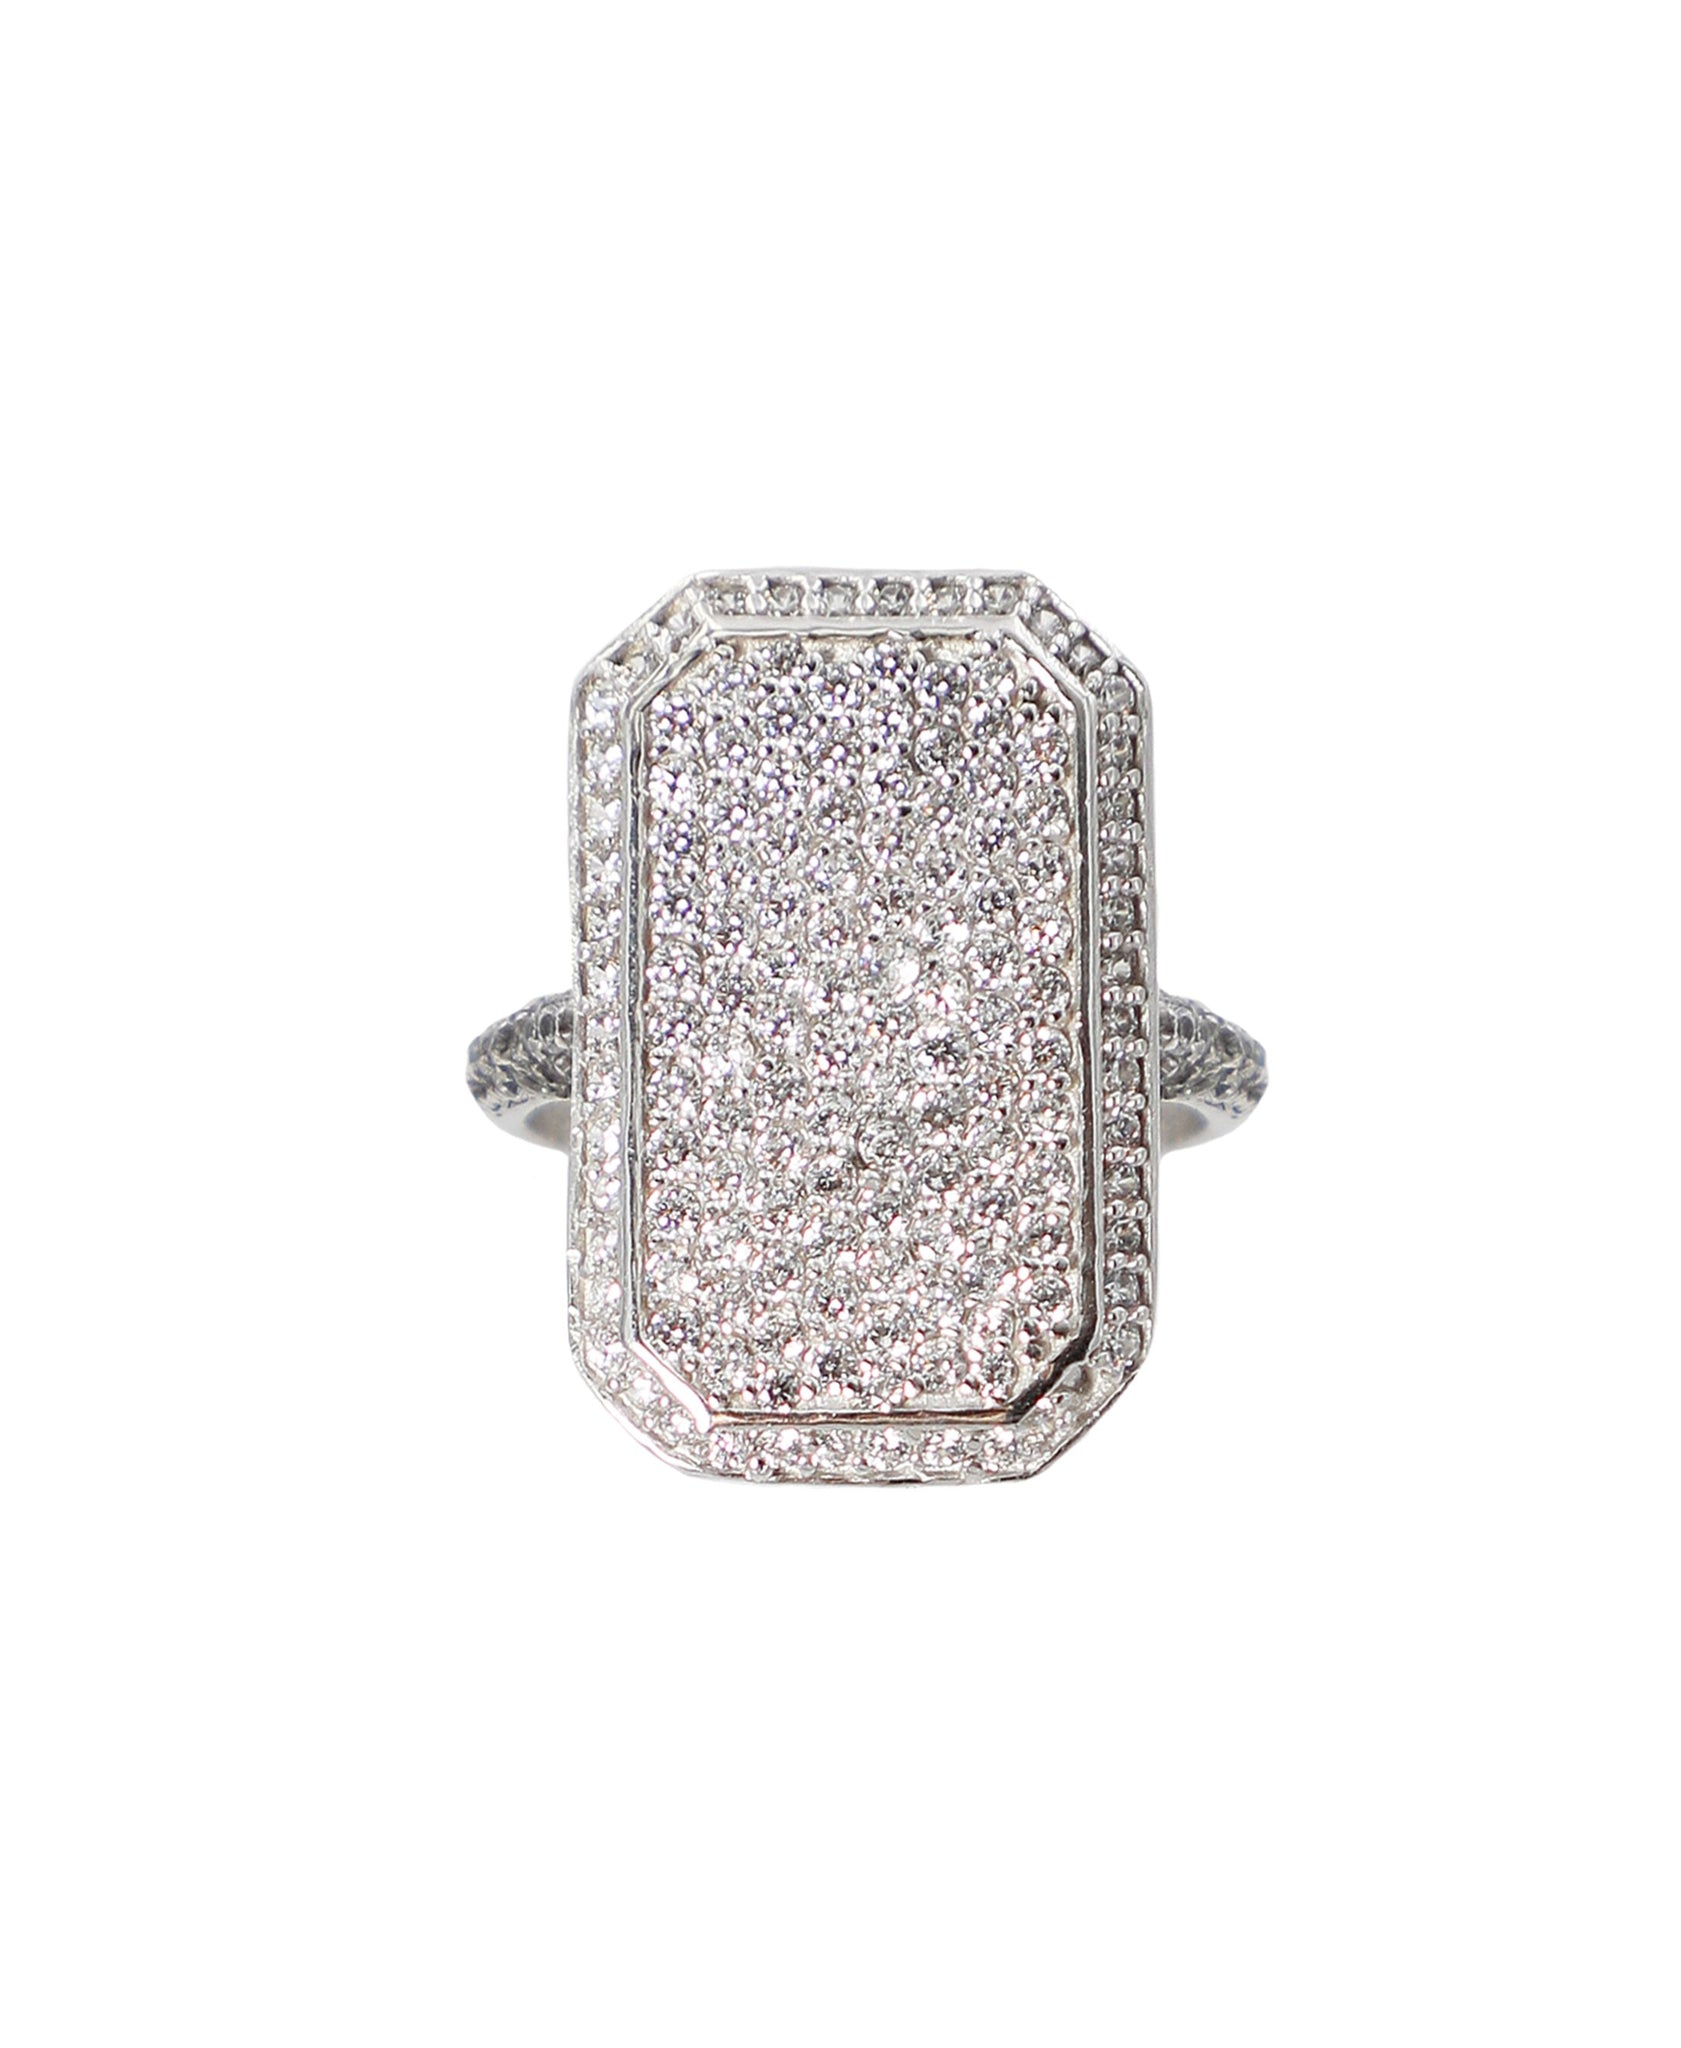 """Isabella"" Cocktail Ring - Fox's"